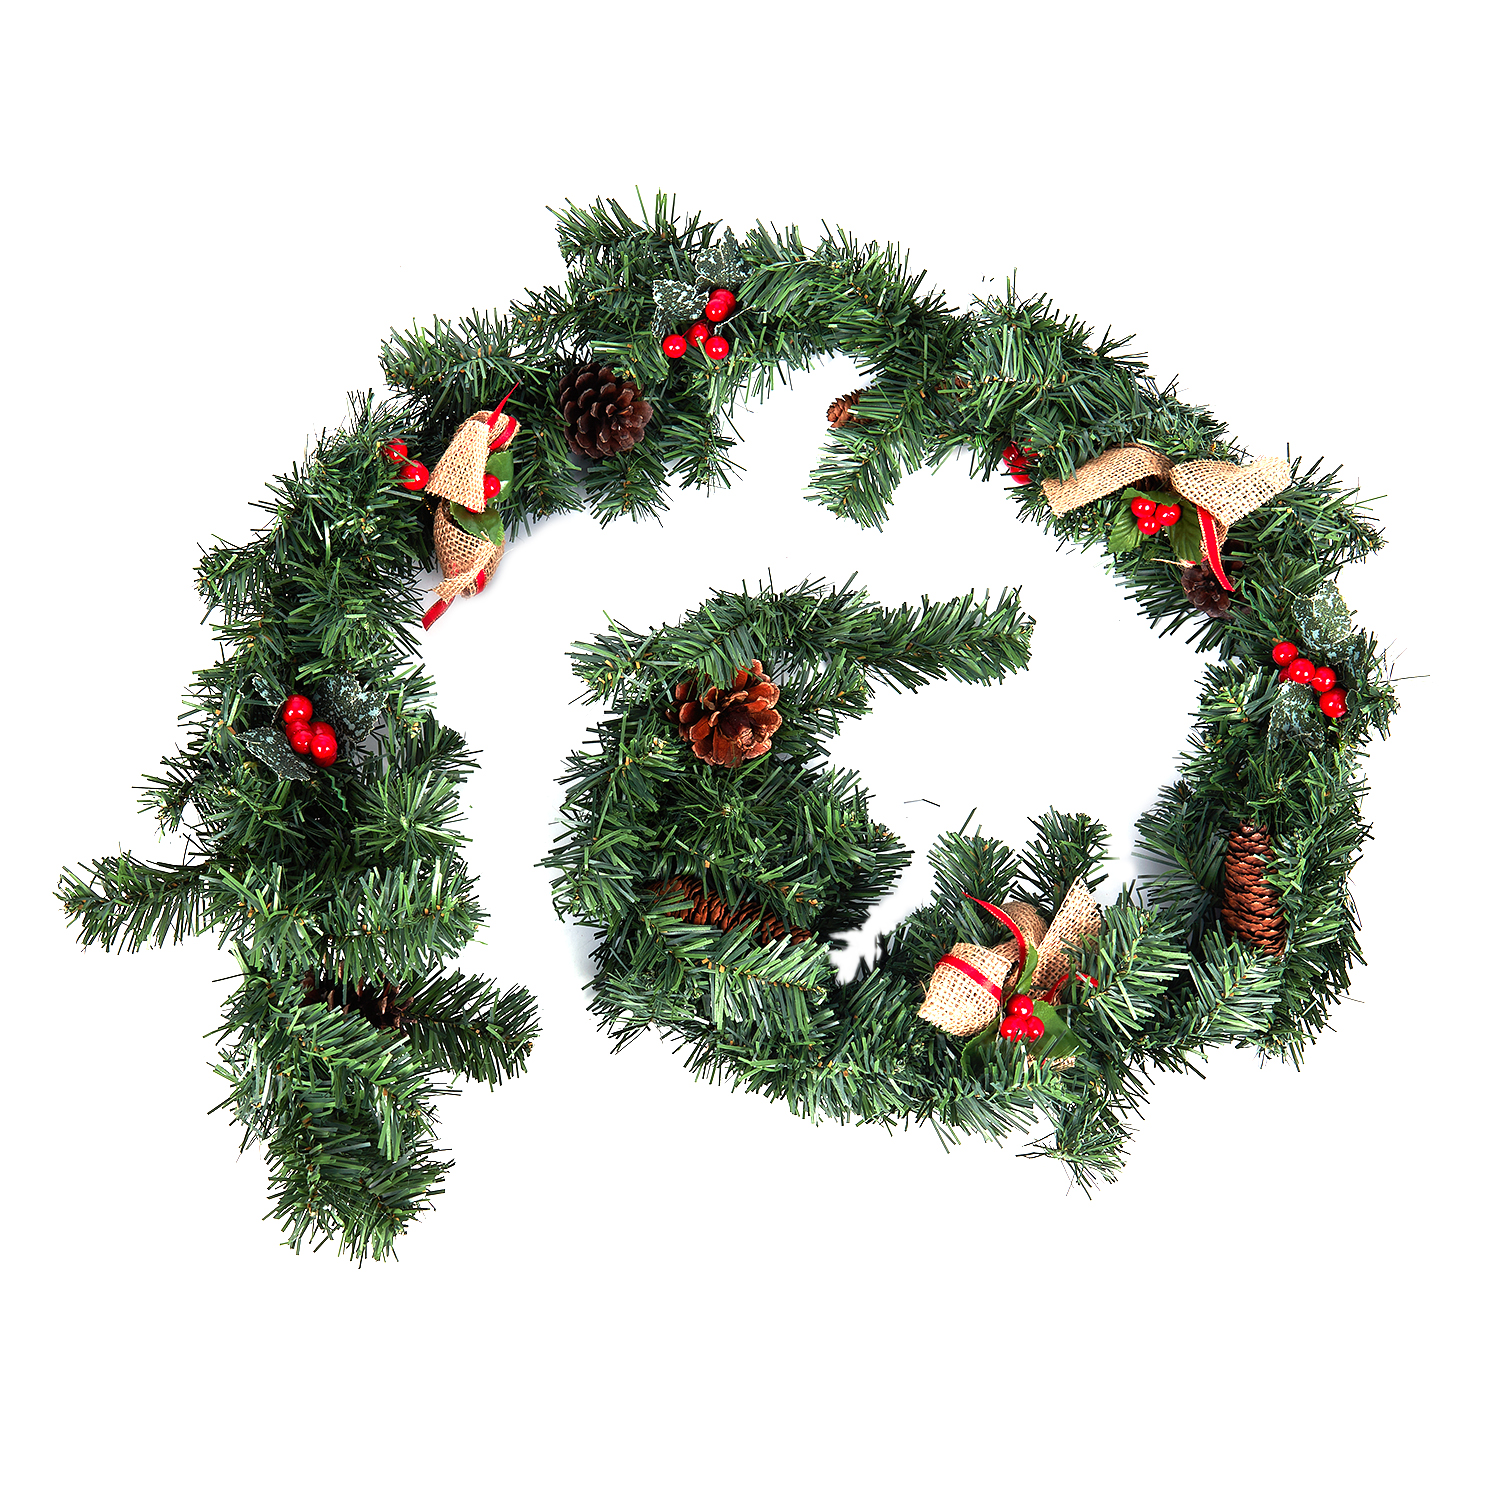 Christmas Garlands.Us 11 31 13 Off 1 8m 6ft Christmas Garlands For Fireplaces Artificial Wreath Garland With Berries Pinecones And Burlap Bowknots Xmas Decoratio In